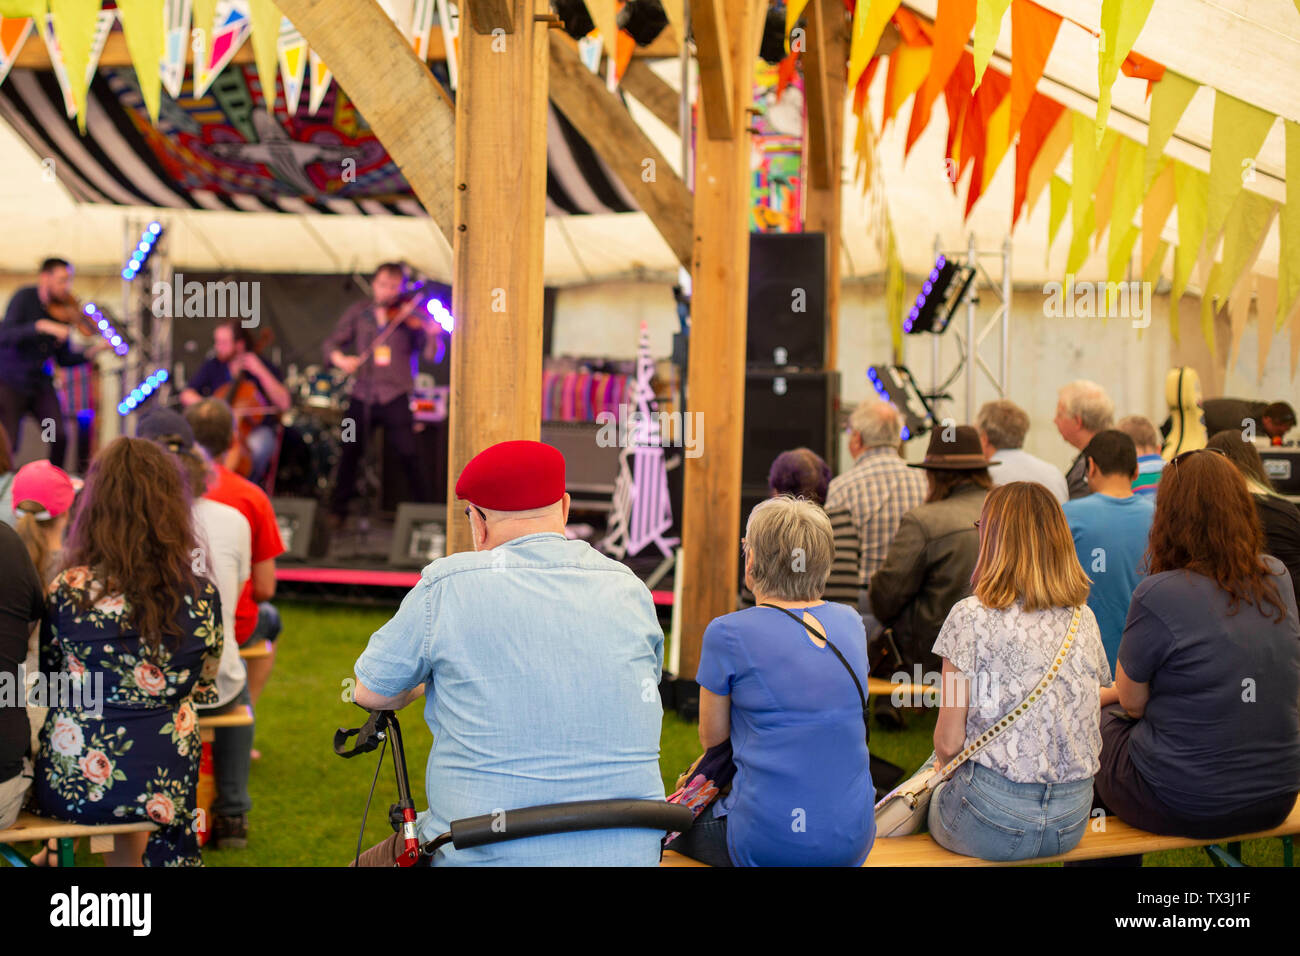 CPeople watch a folk band play during day two of the Tafwyl festival at Cardiff Castle. Stock Photo